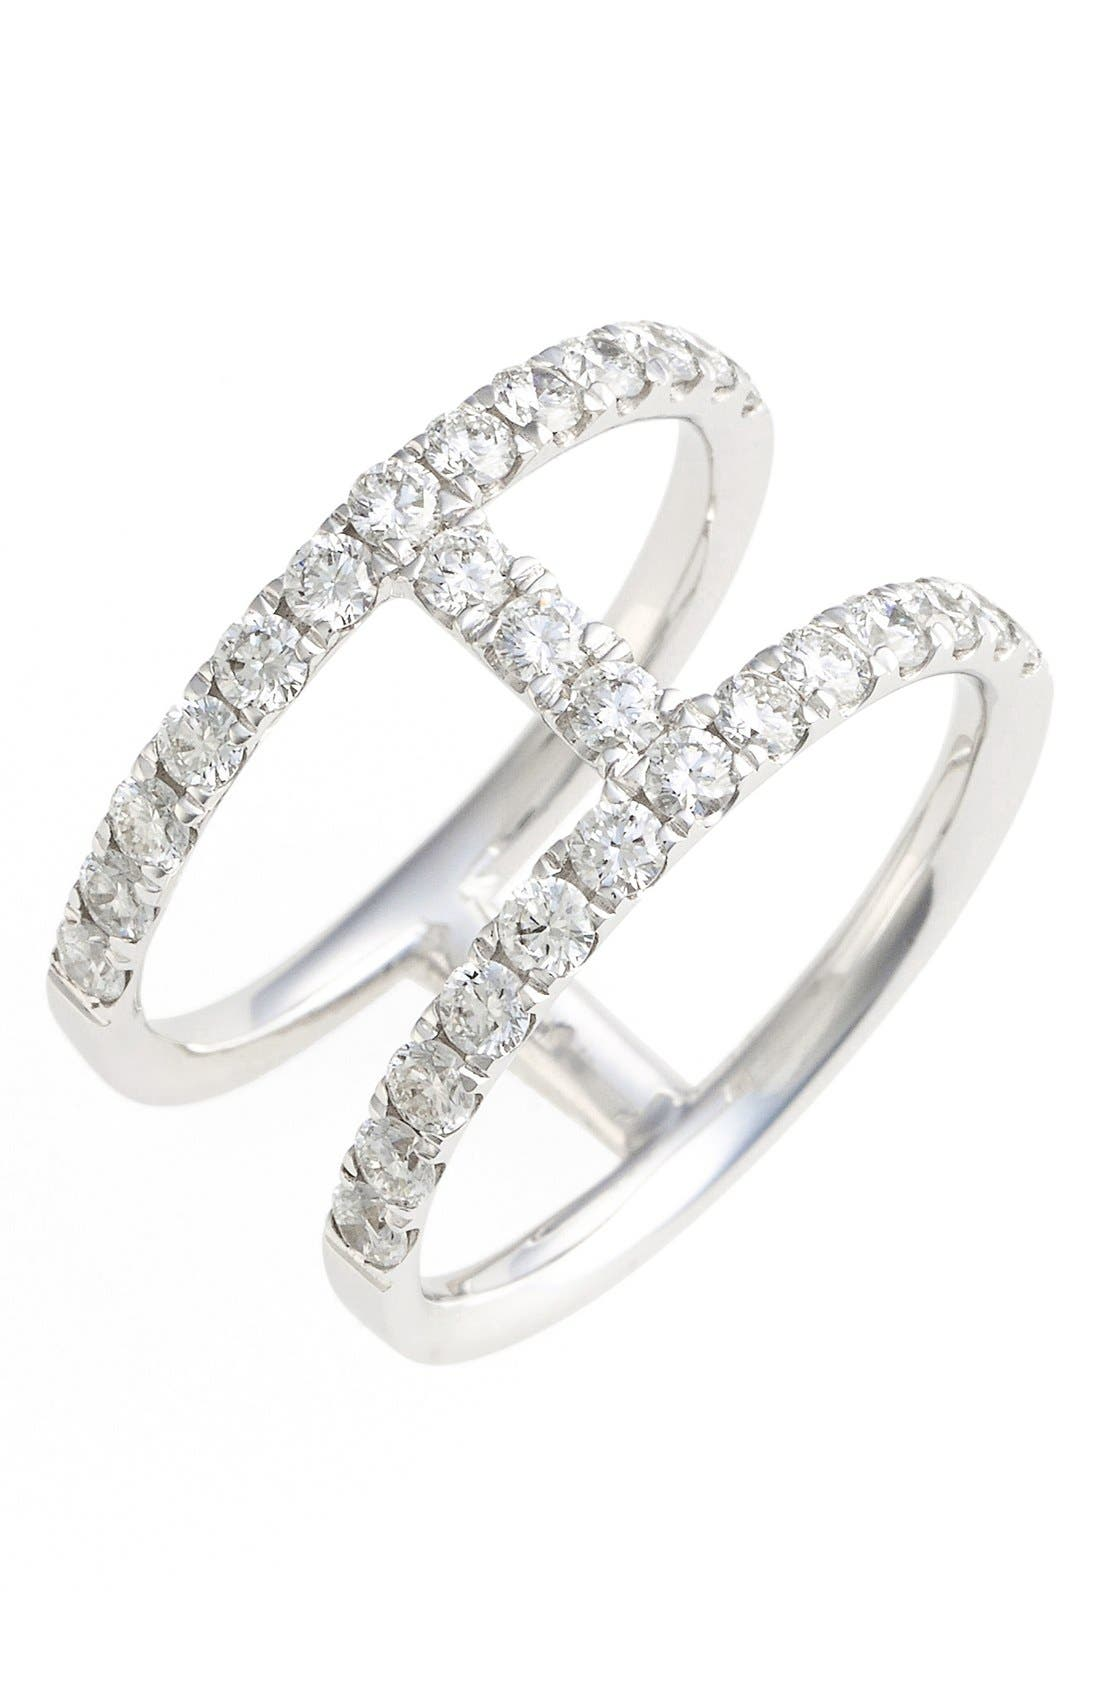 Main Image - Bony Levy 'Prism' Two-Row Bar Diamond Ring (Nordstrom Exclusive)